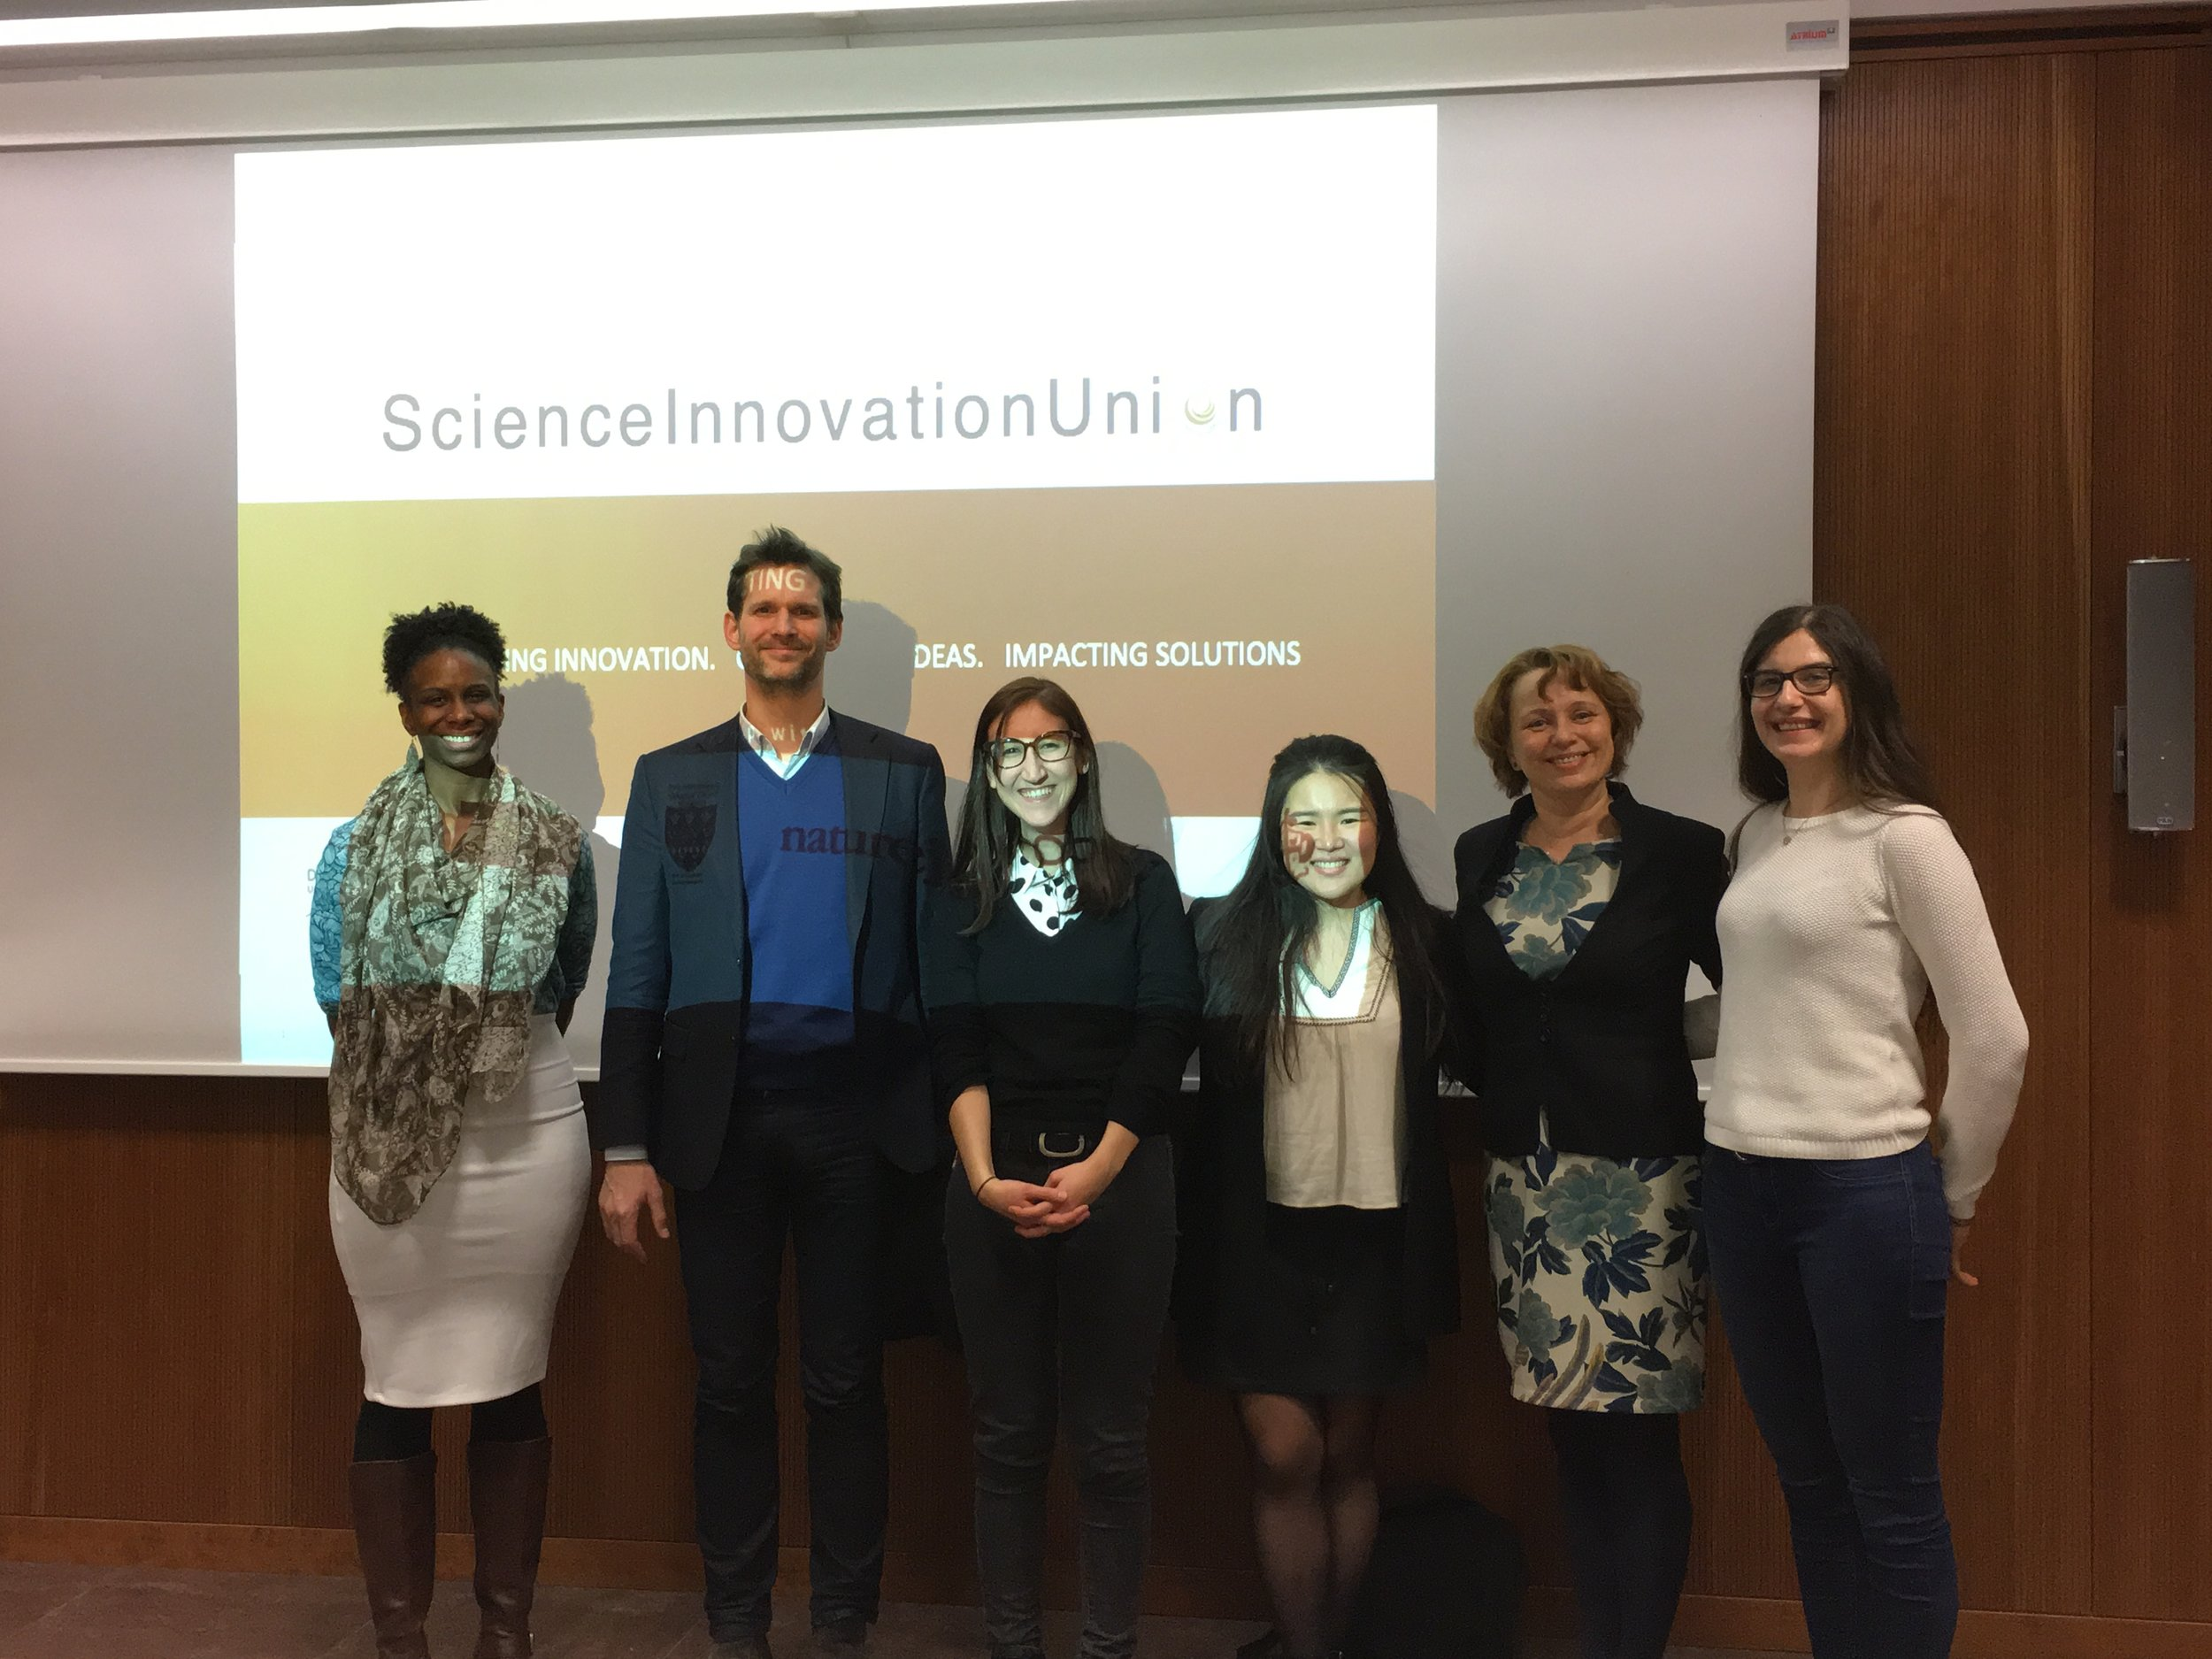 Members of SIUFrankfurt Team with Dr. Björn Rotter and Dr. Dana Ukropcova